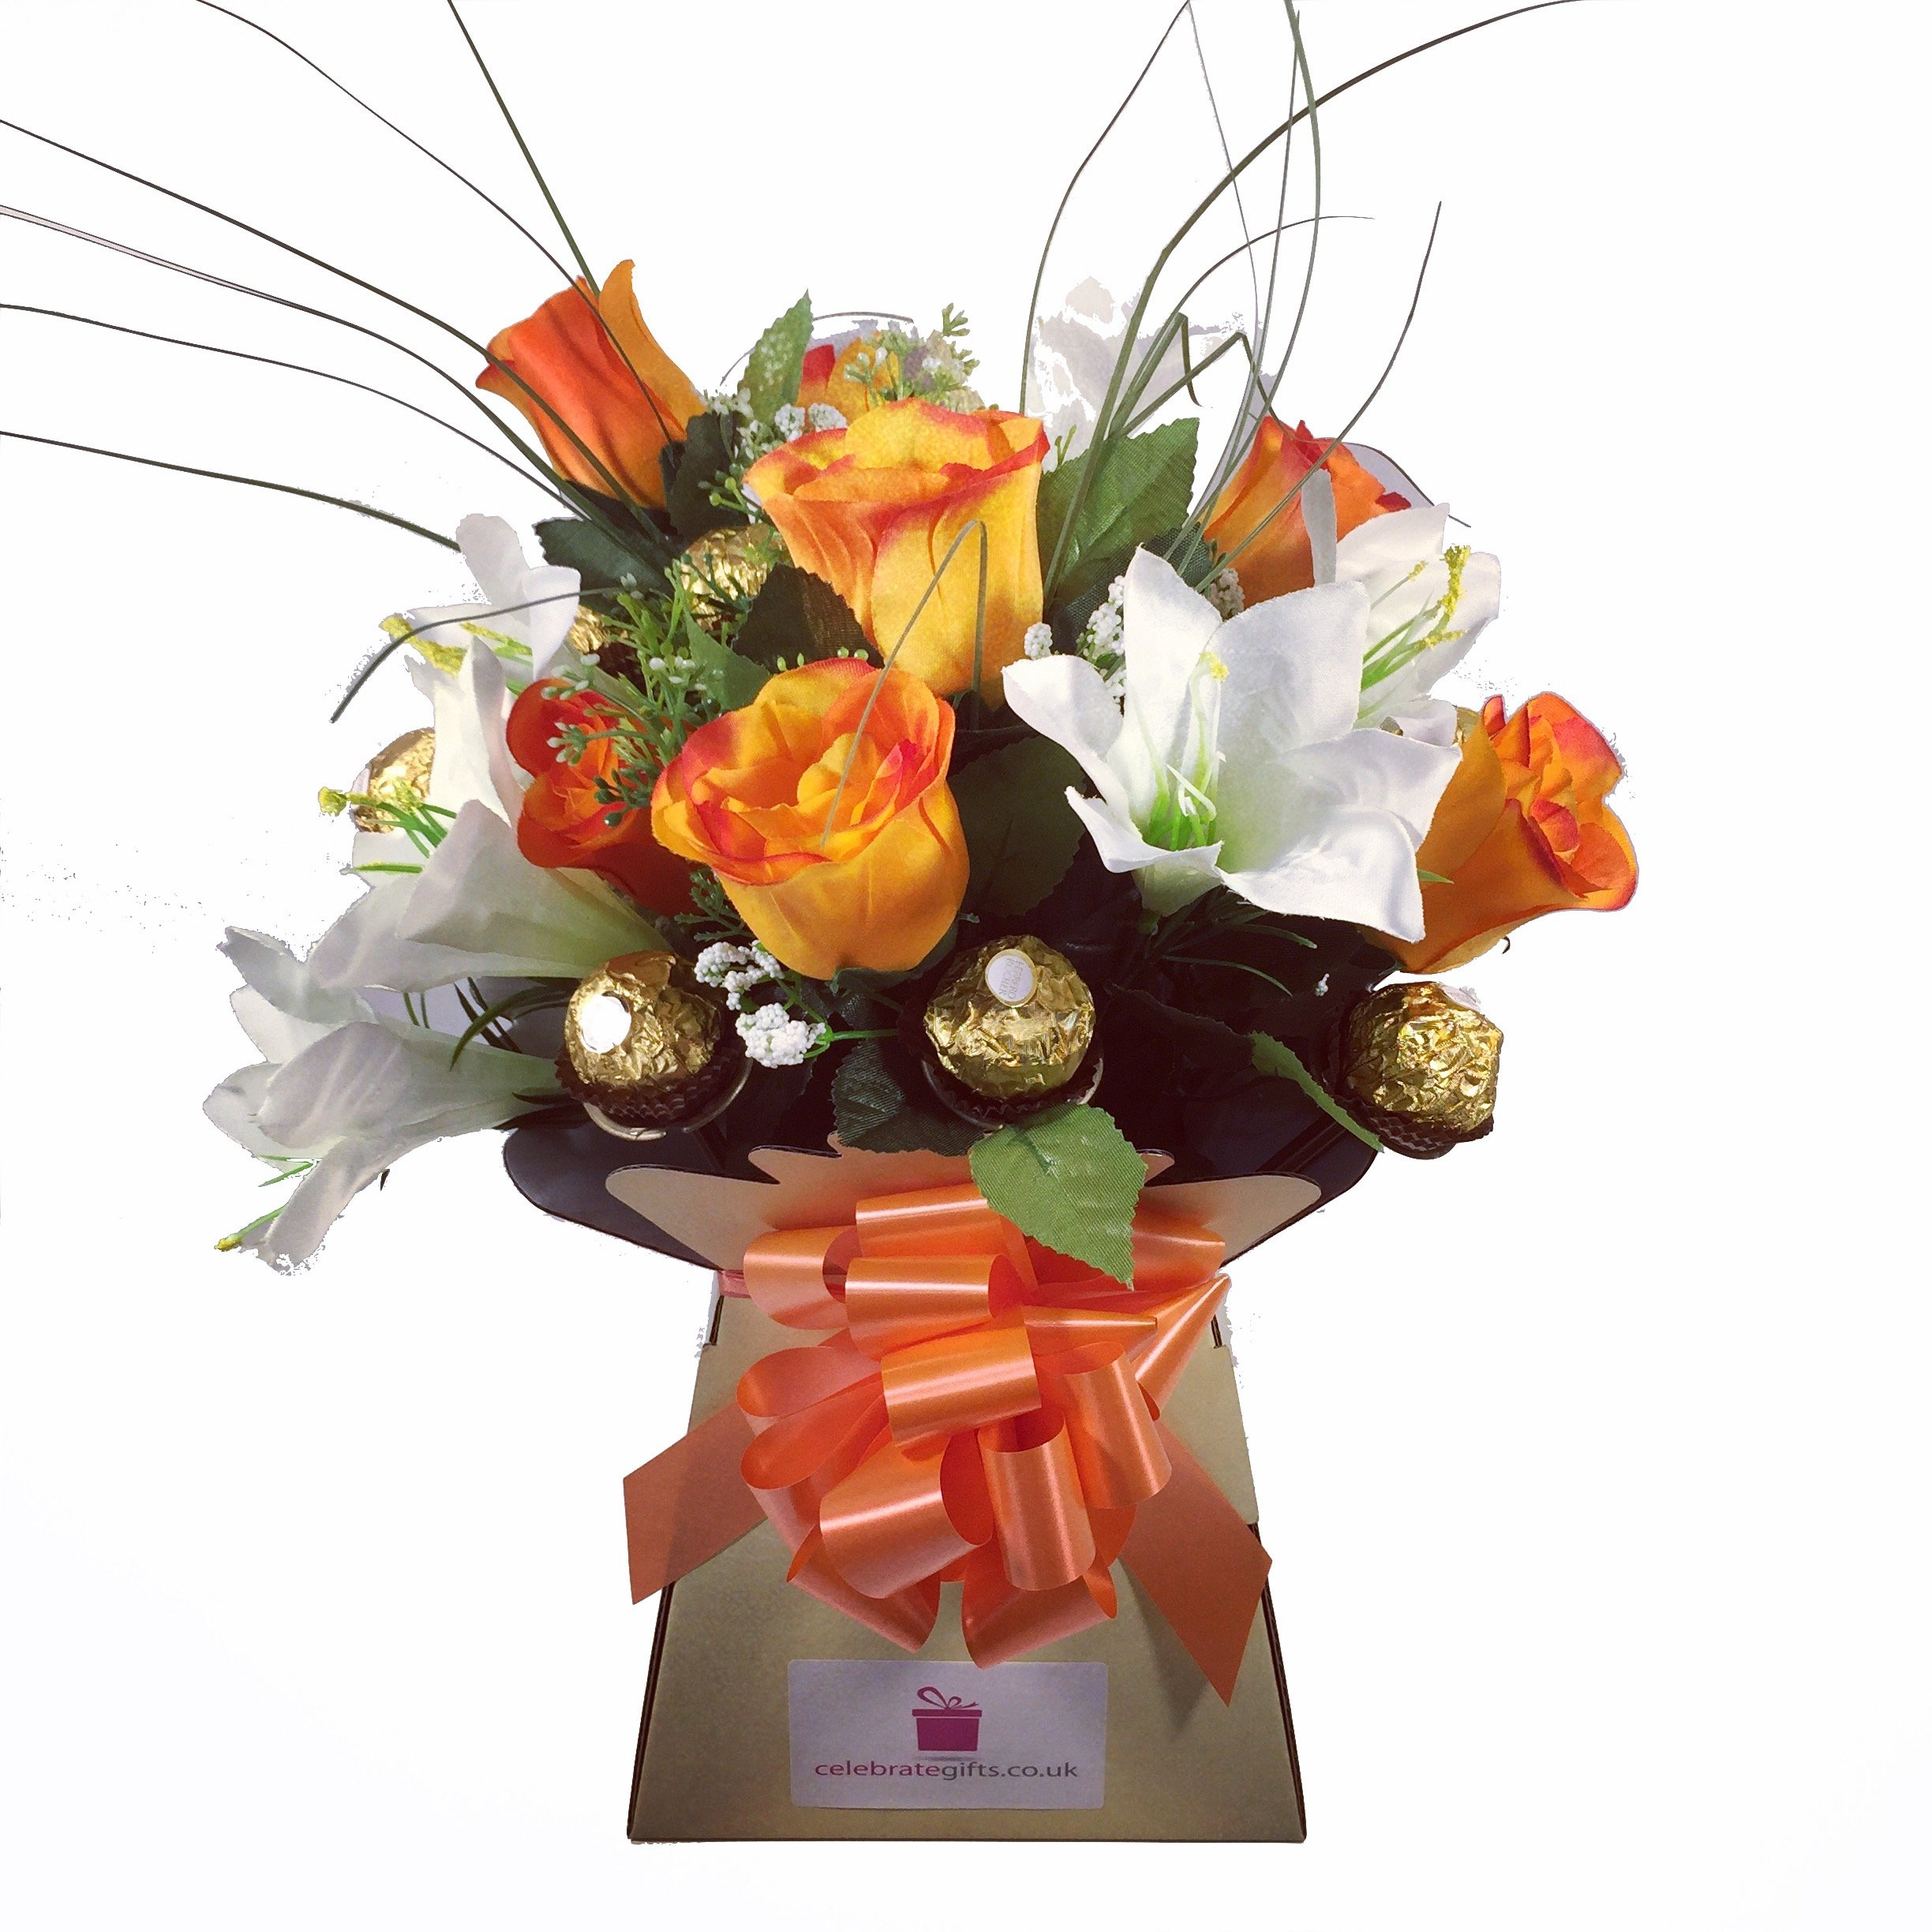 Chocolate flower bouquet amazon luxury silk orange roses lilies and ferrero rocher chocolate bouquet izmirmasajfo